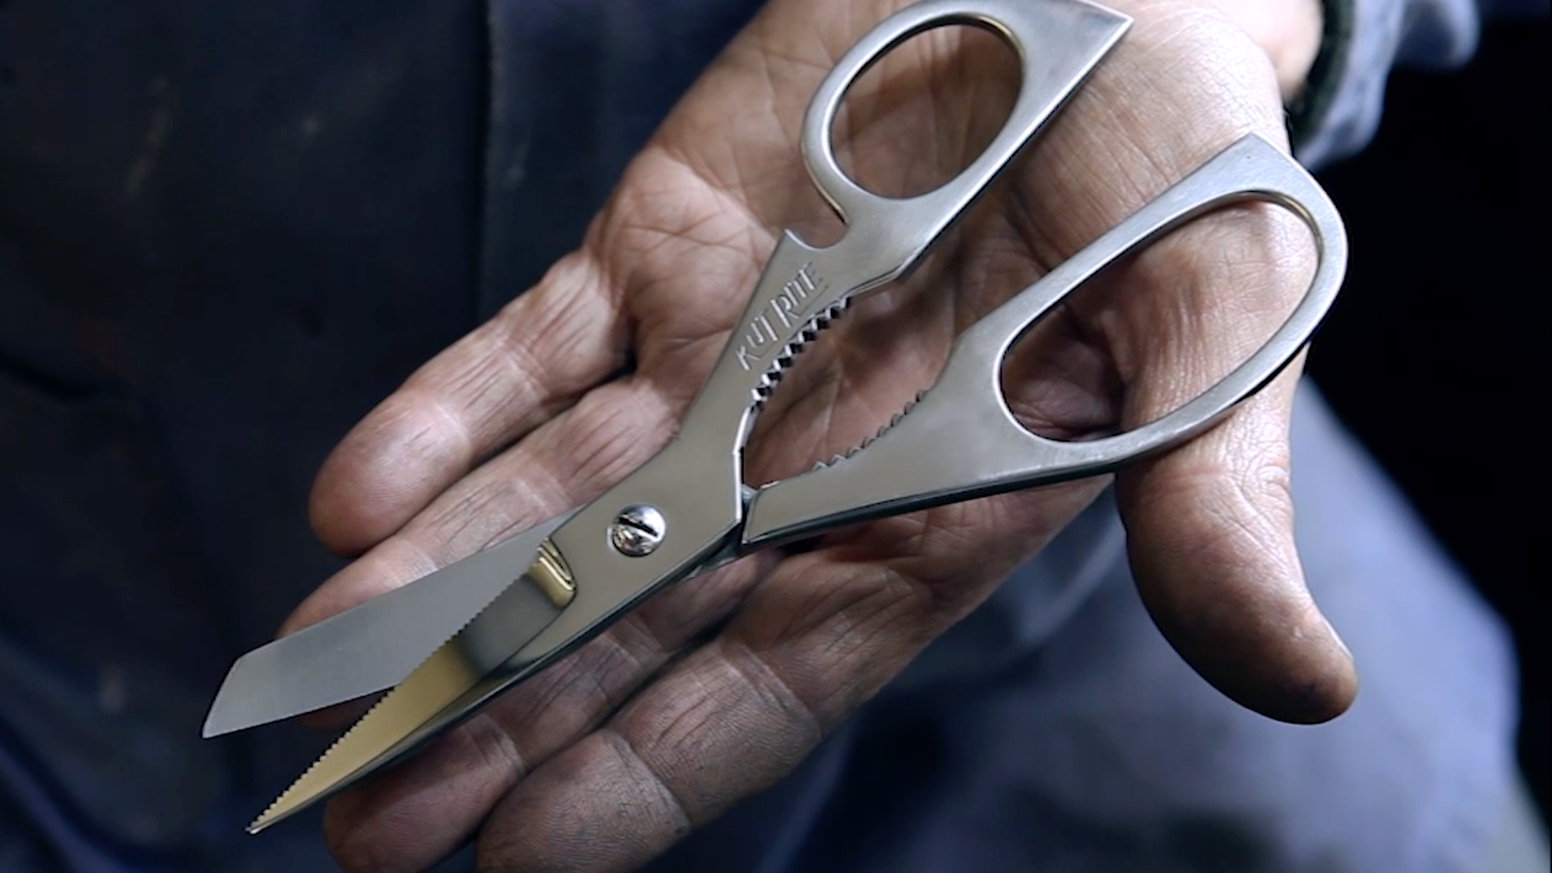 Lifetime-lasting scissors designed and hand-made by Ernest Wright and Son Ltd in Sheffield England - the birthplace of stainless steel.